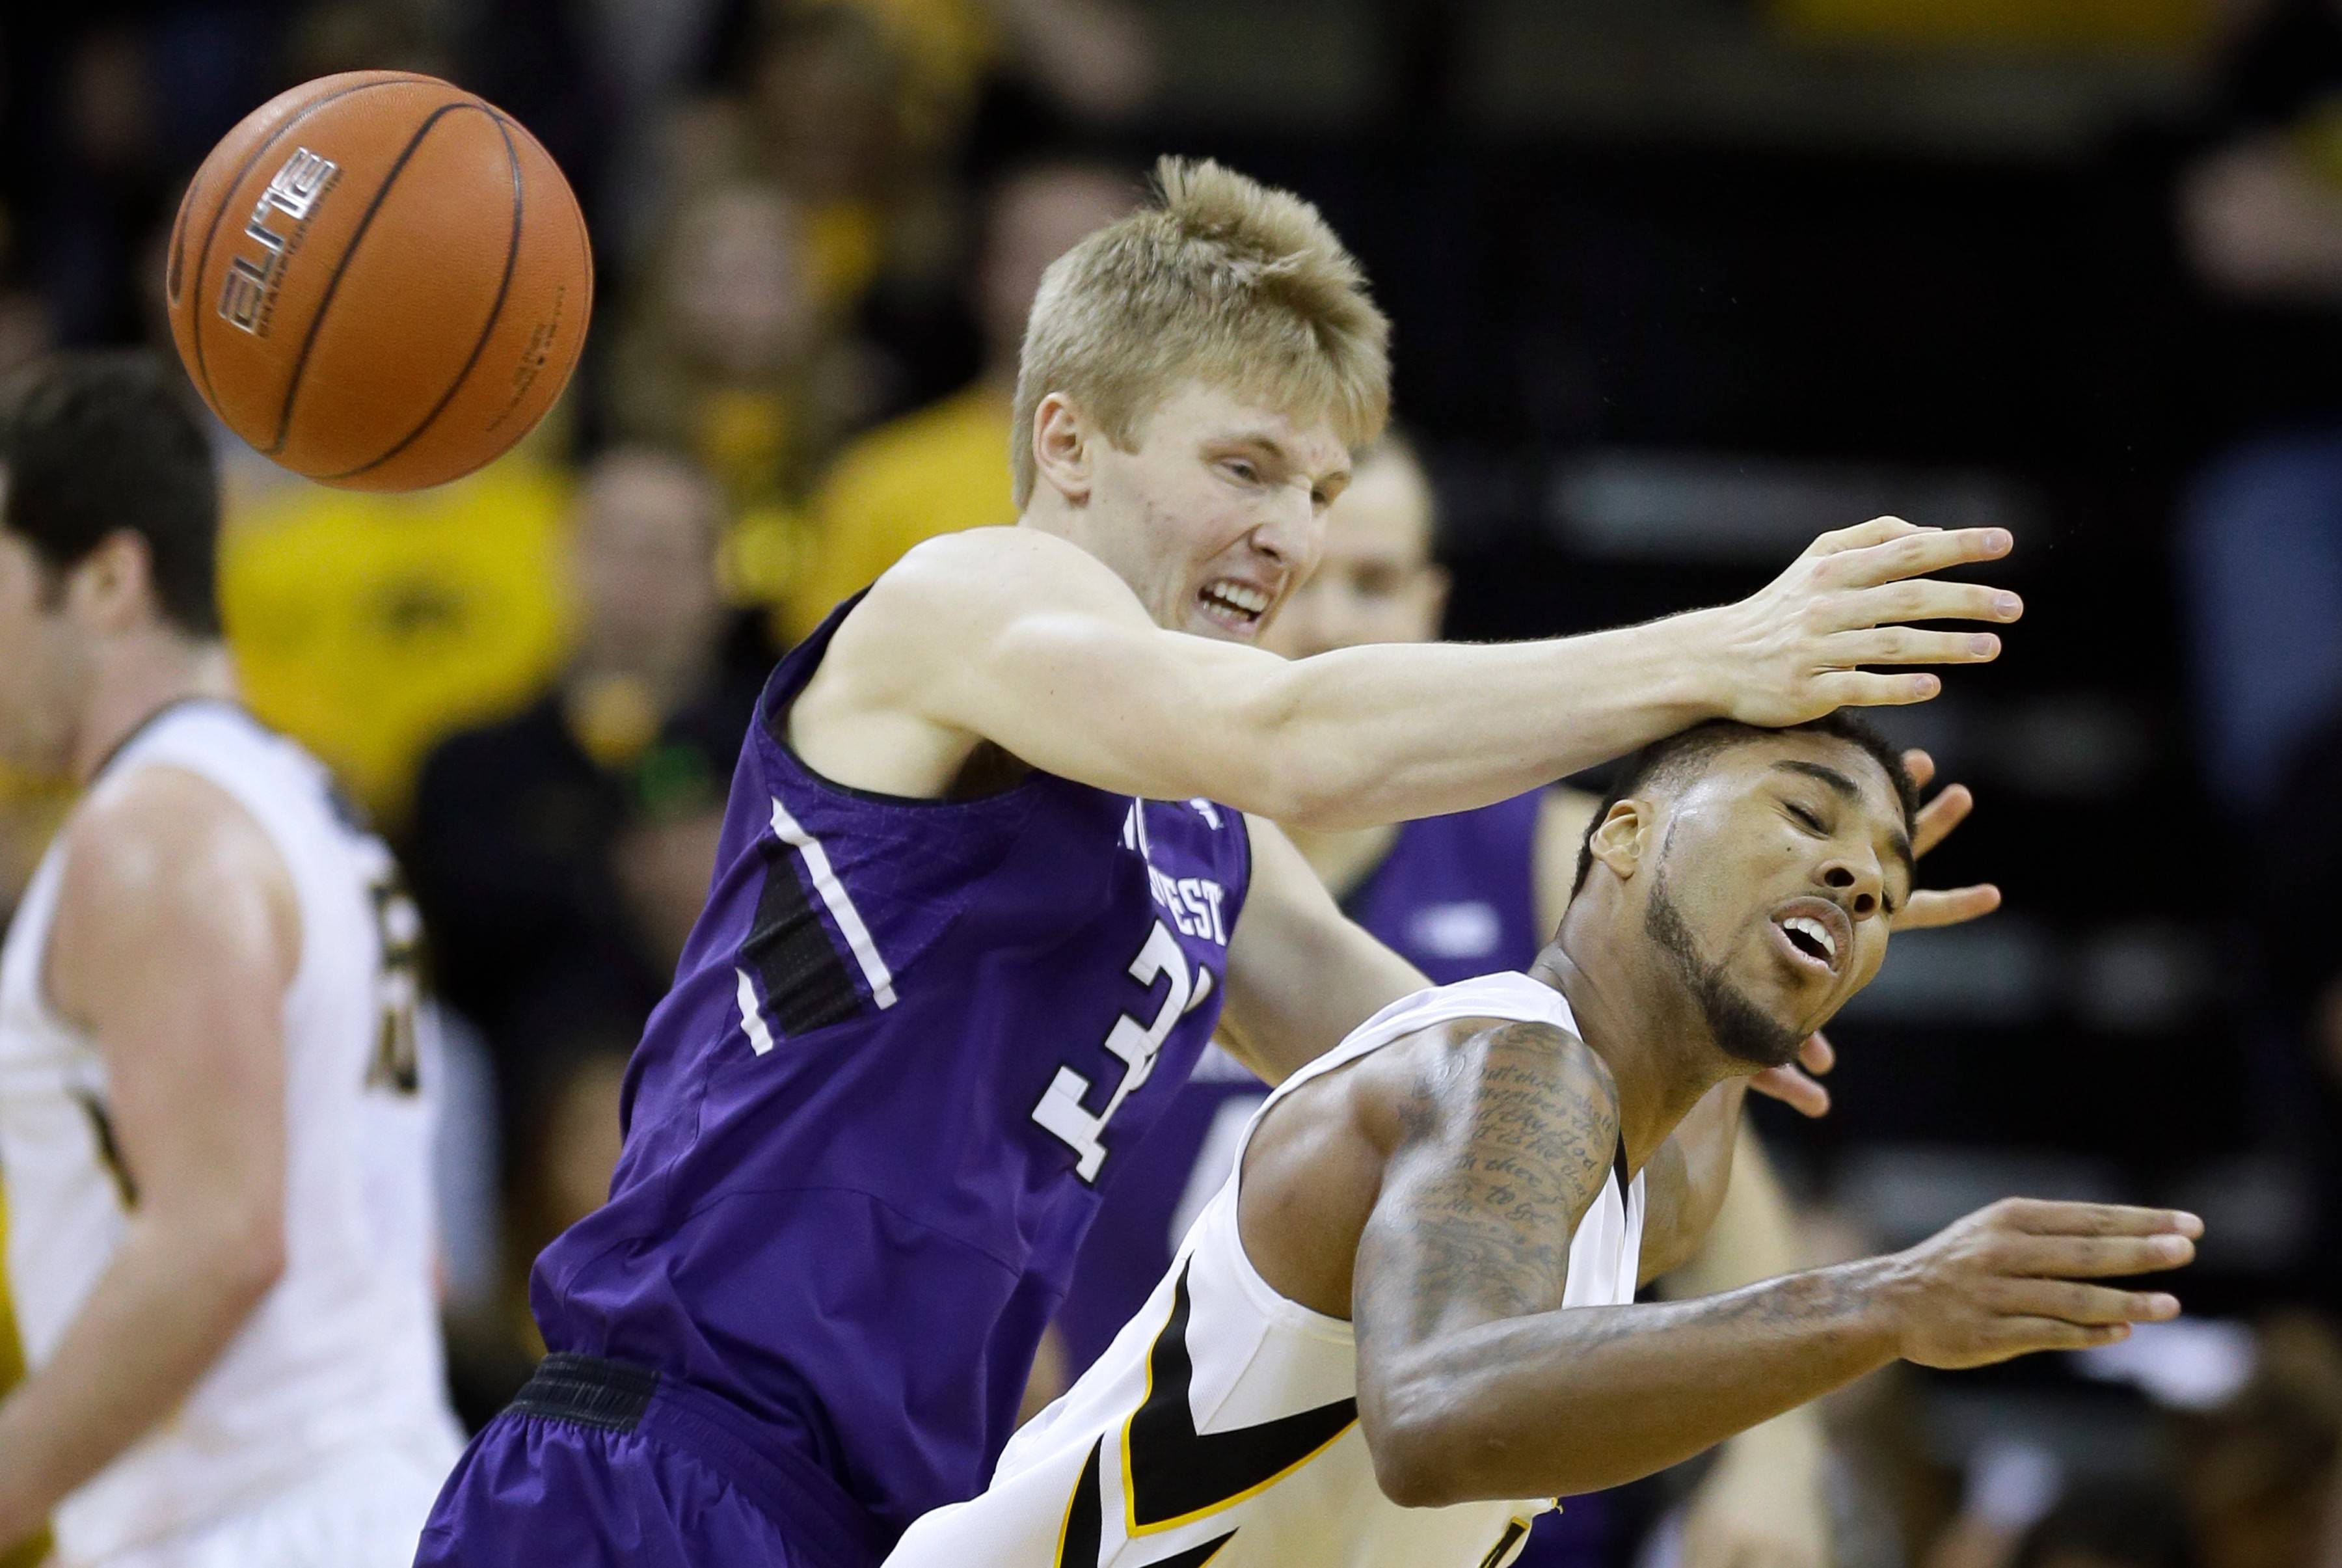 Iowa guard Devyn Marble, right, steals the ball from Northwestern forward Nathan Taphorn during the second half Thursday's game in Iowa City.